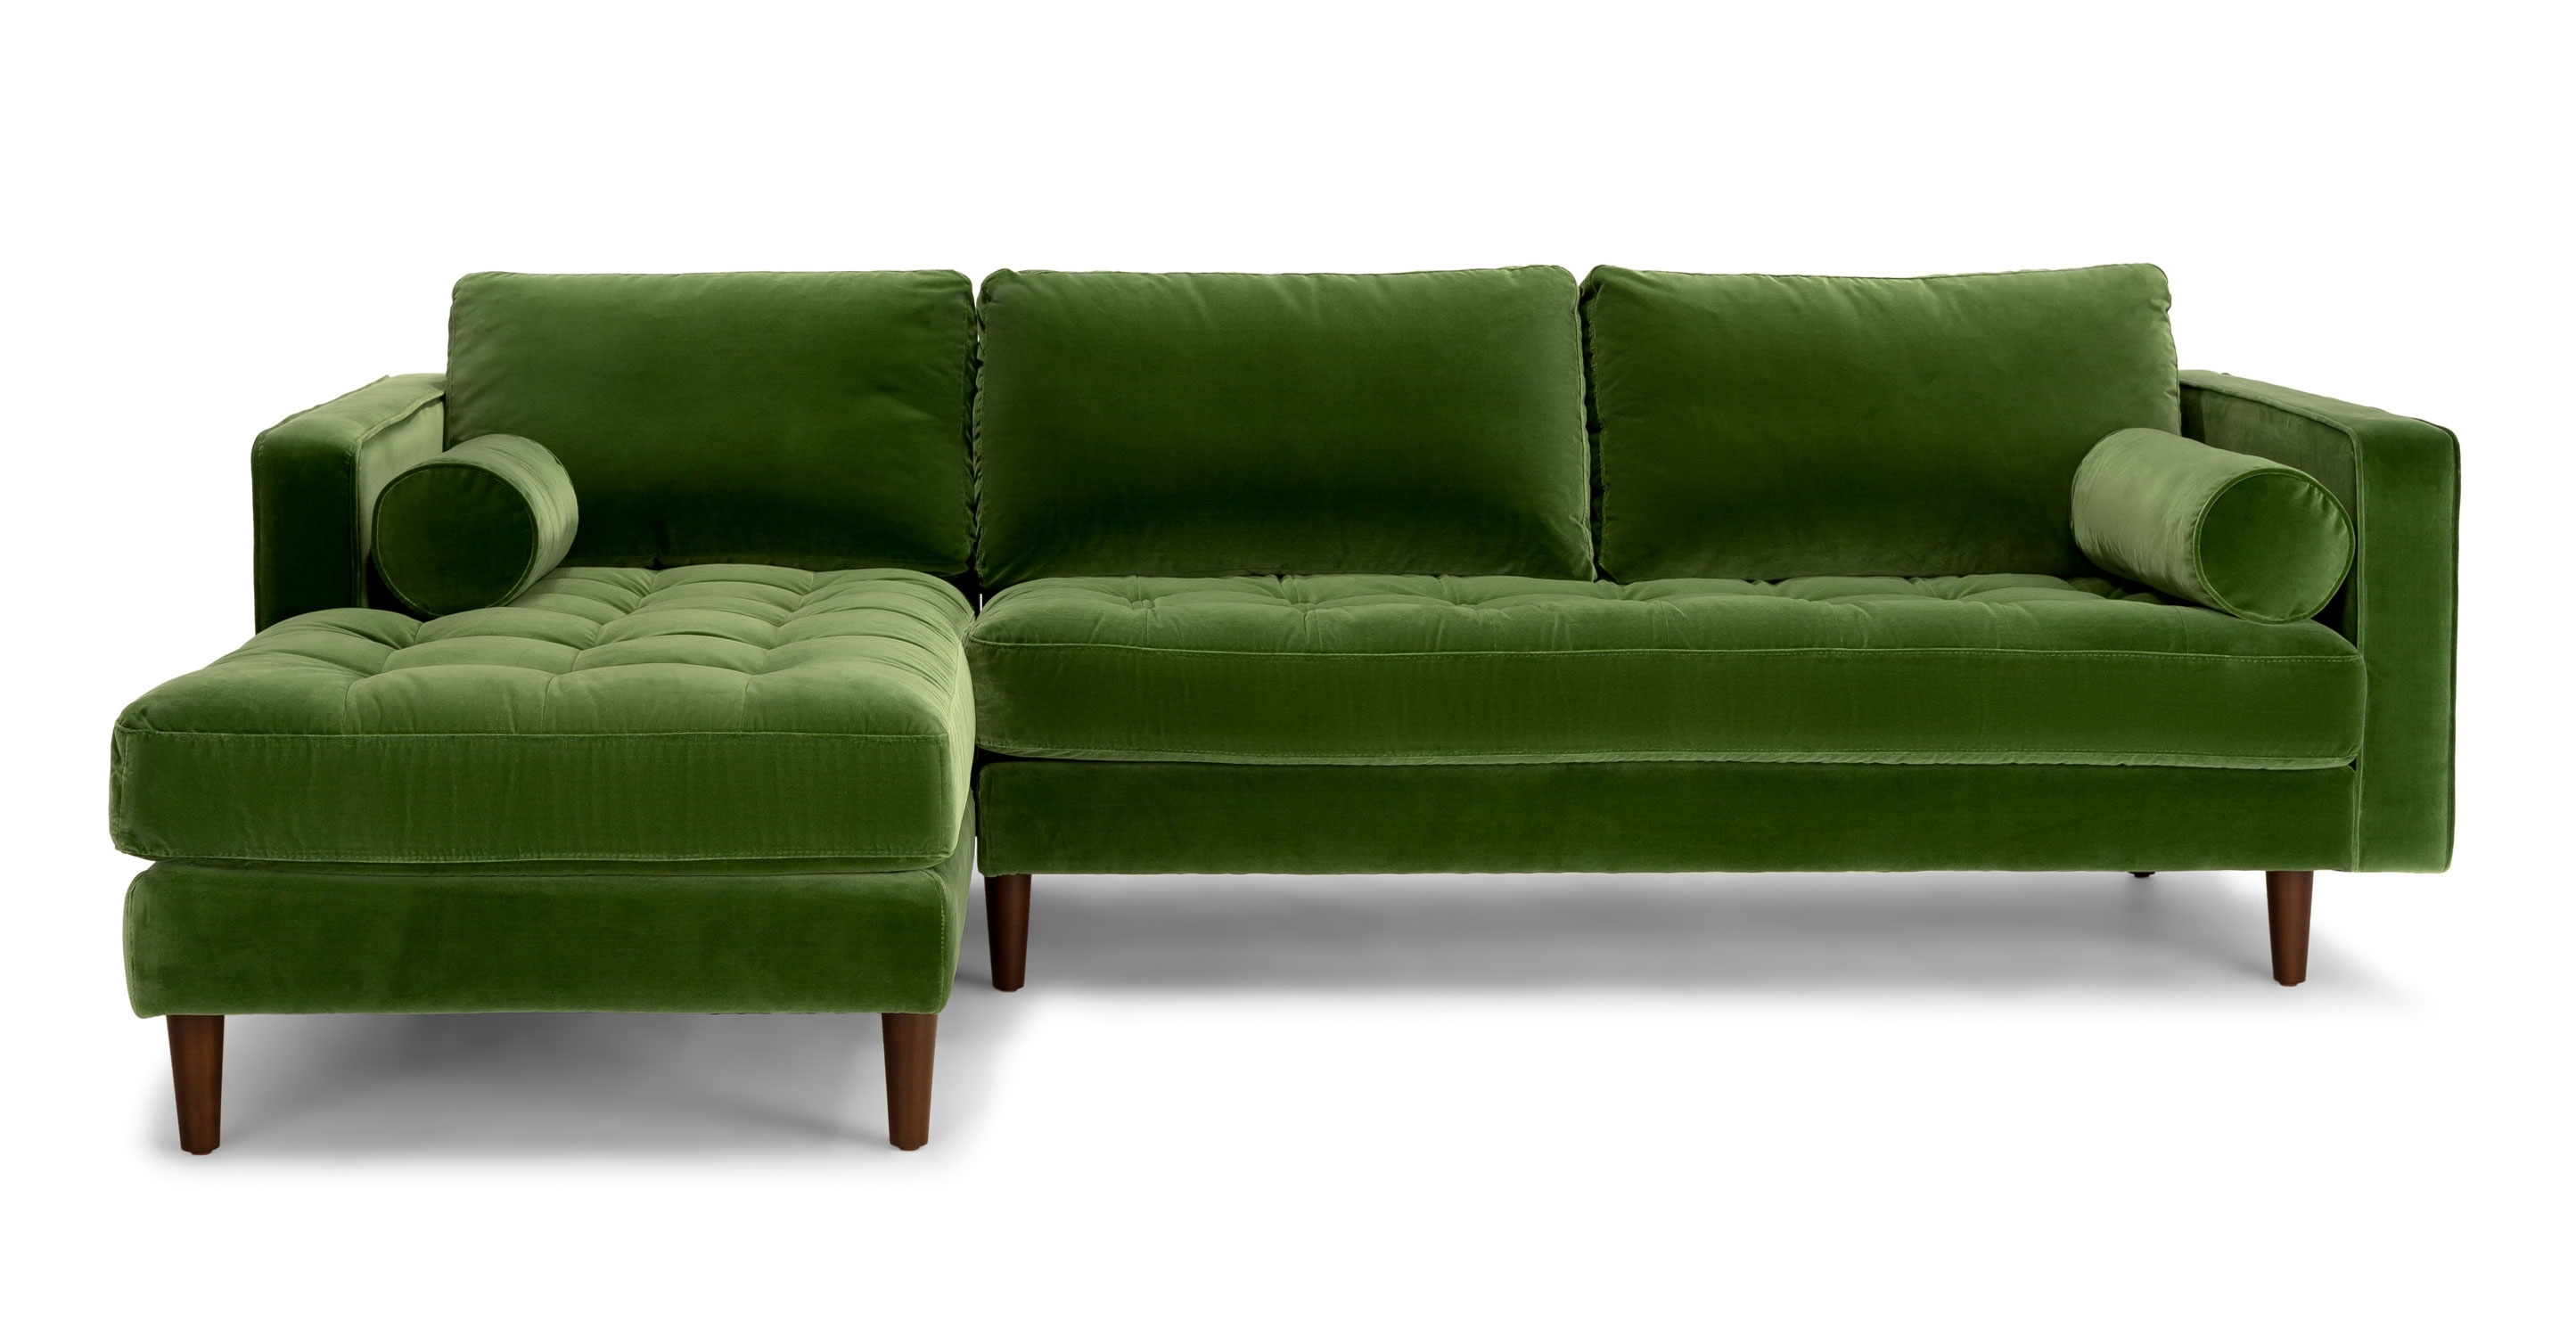 Olive Green Chenille Fabrical Sofa Seafoam Emerald Leather Sage with Green Sectional Sofas